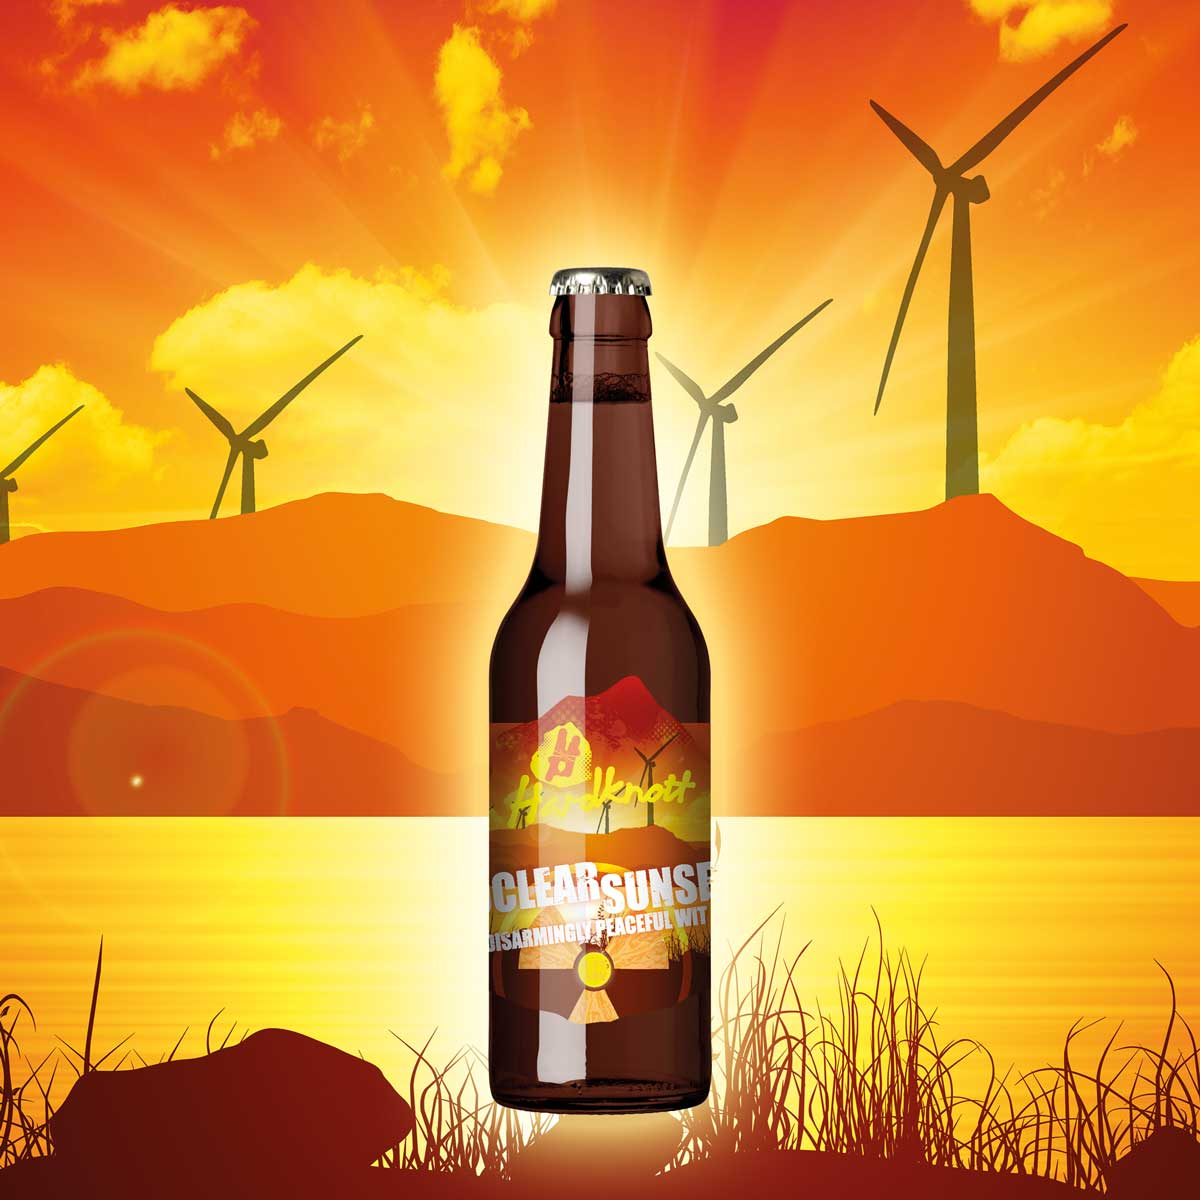 Hardknott Brewery - Nuclear Sunset